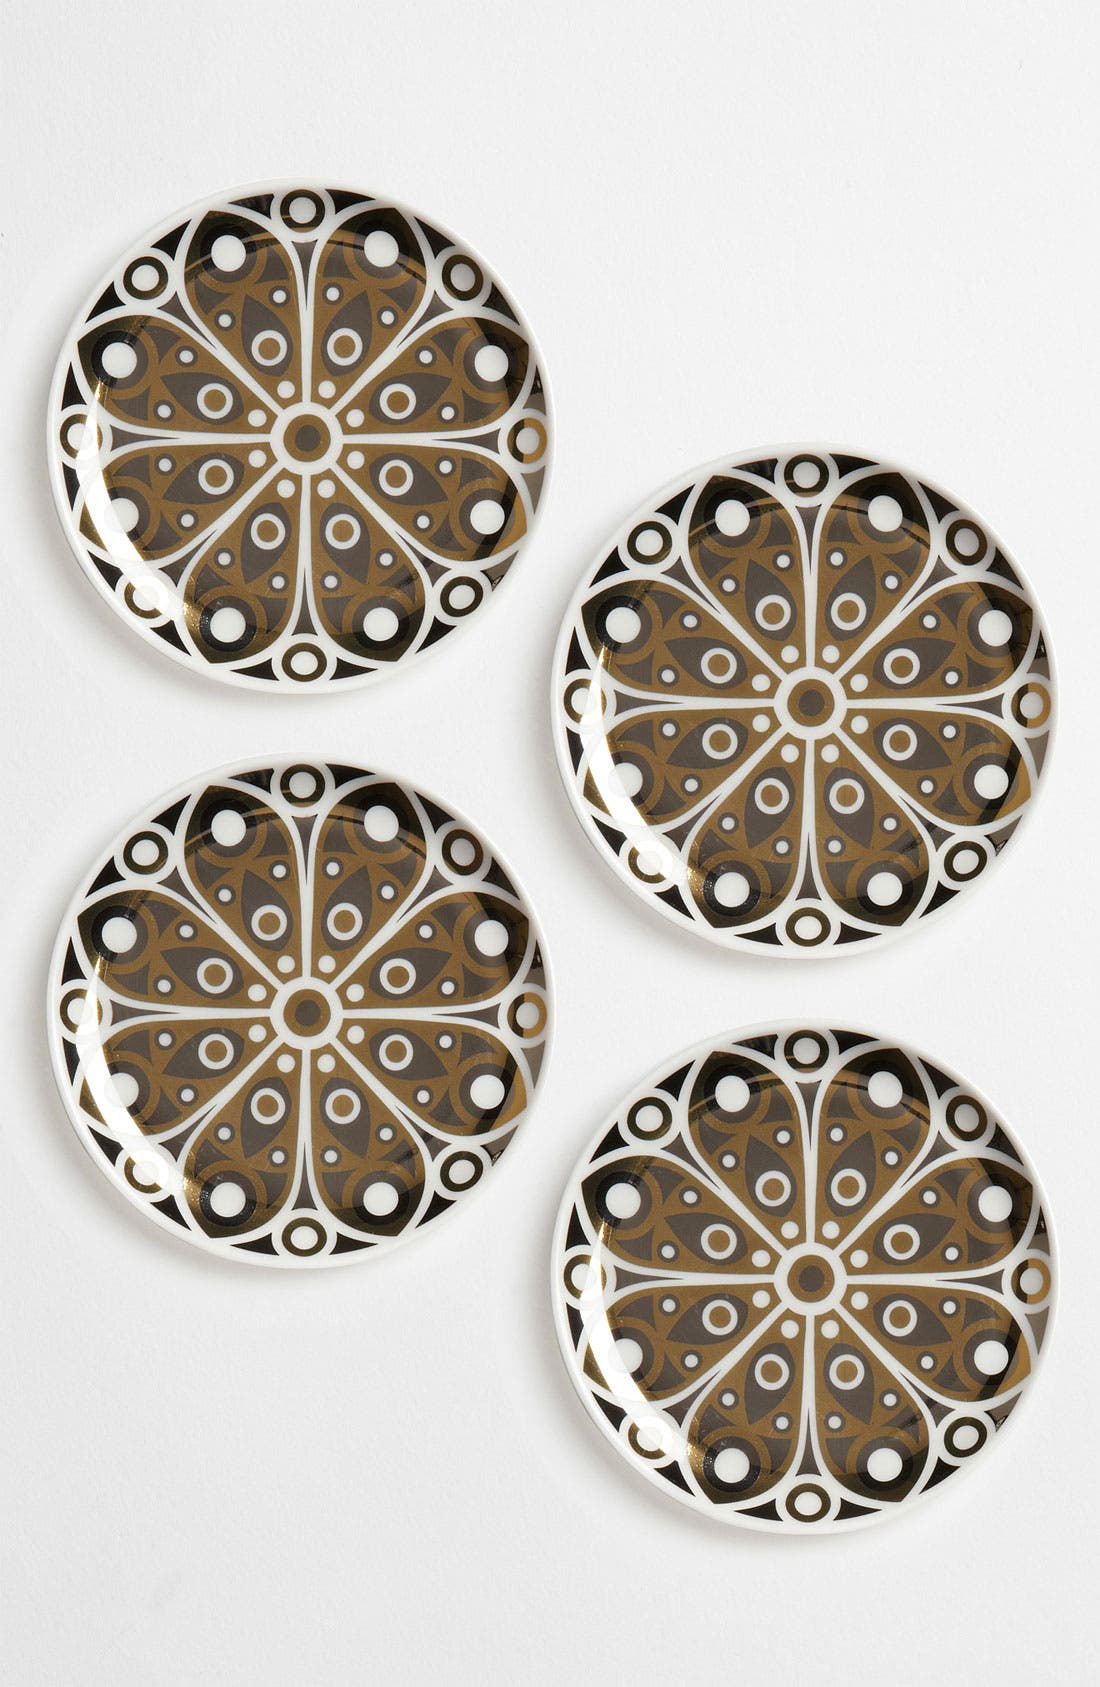 Alternate Image 1 Selected - Jonathan Adler 'Peacock' Porcelain Coasters (Set of 4)